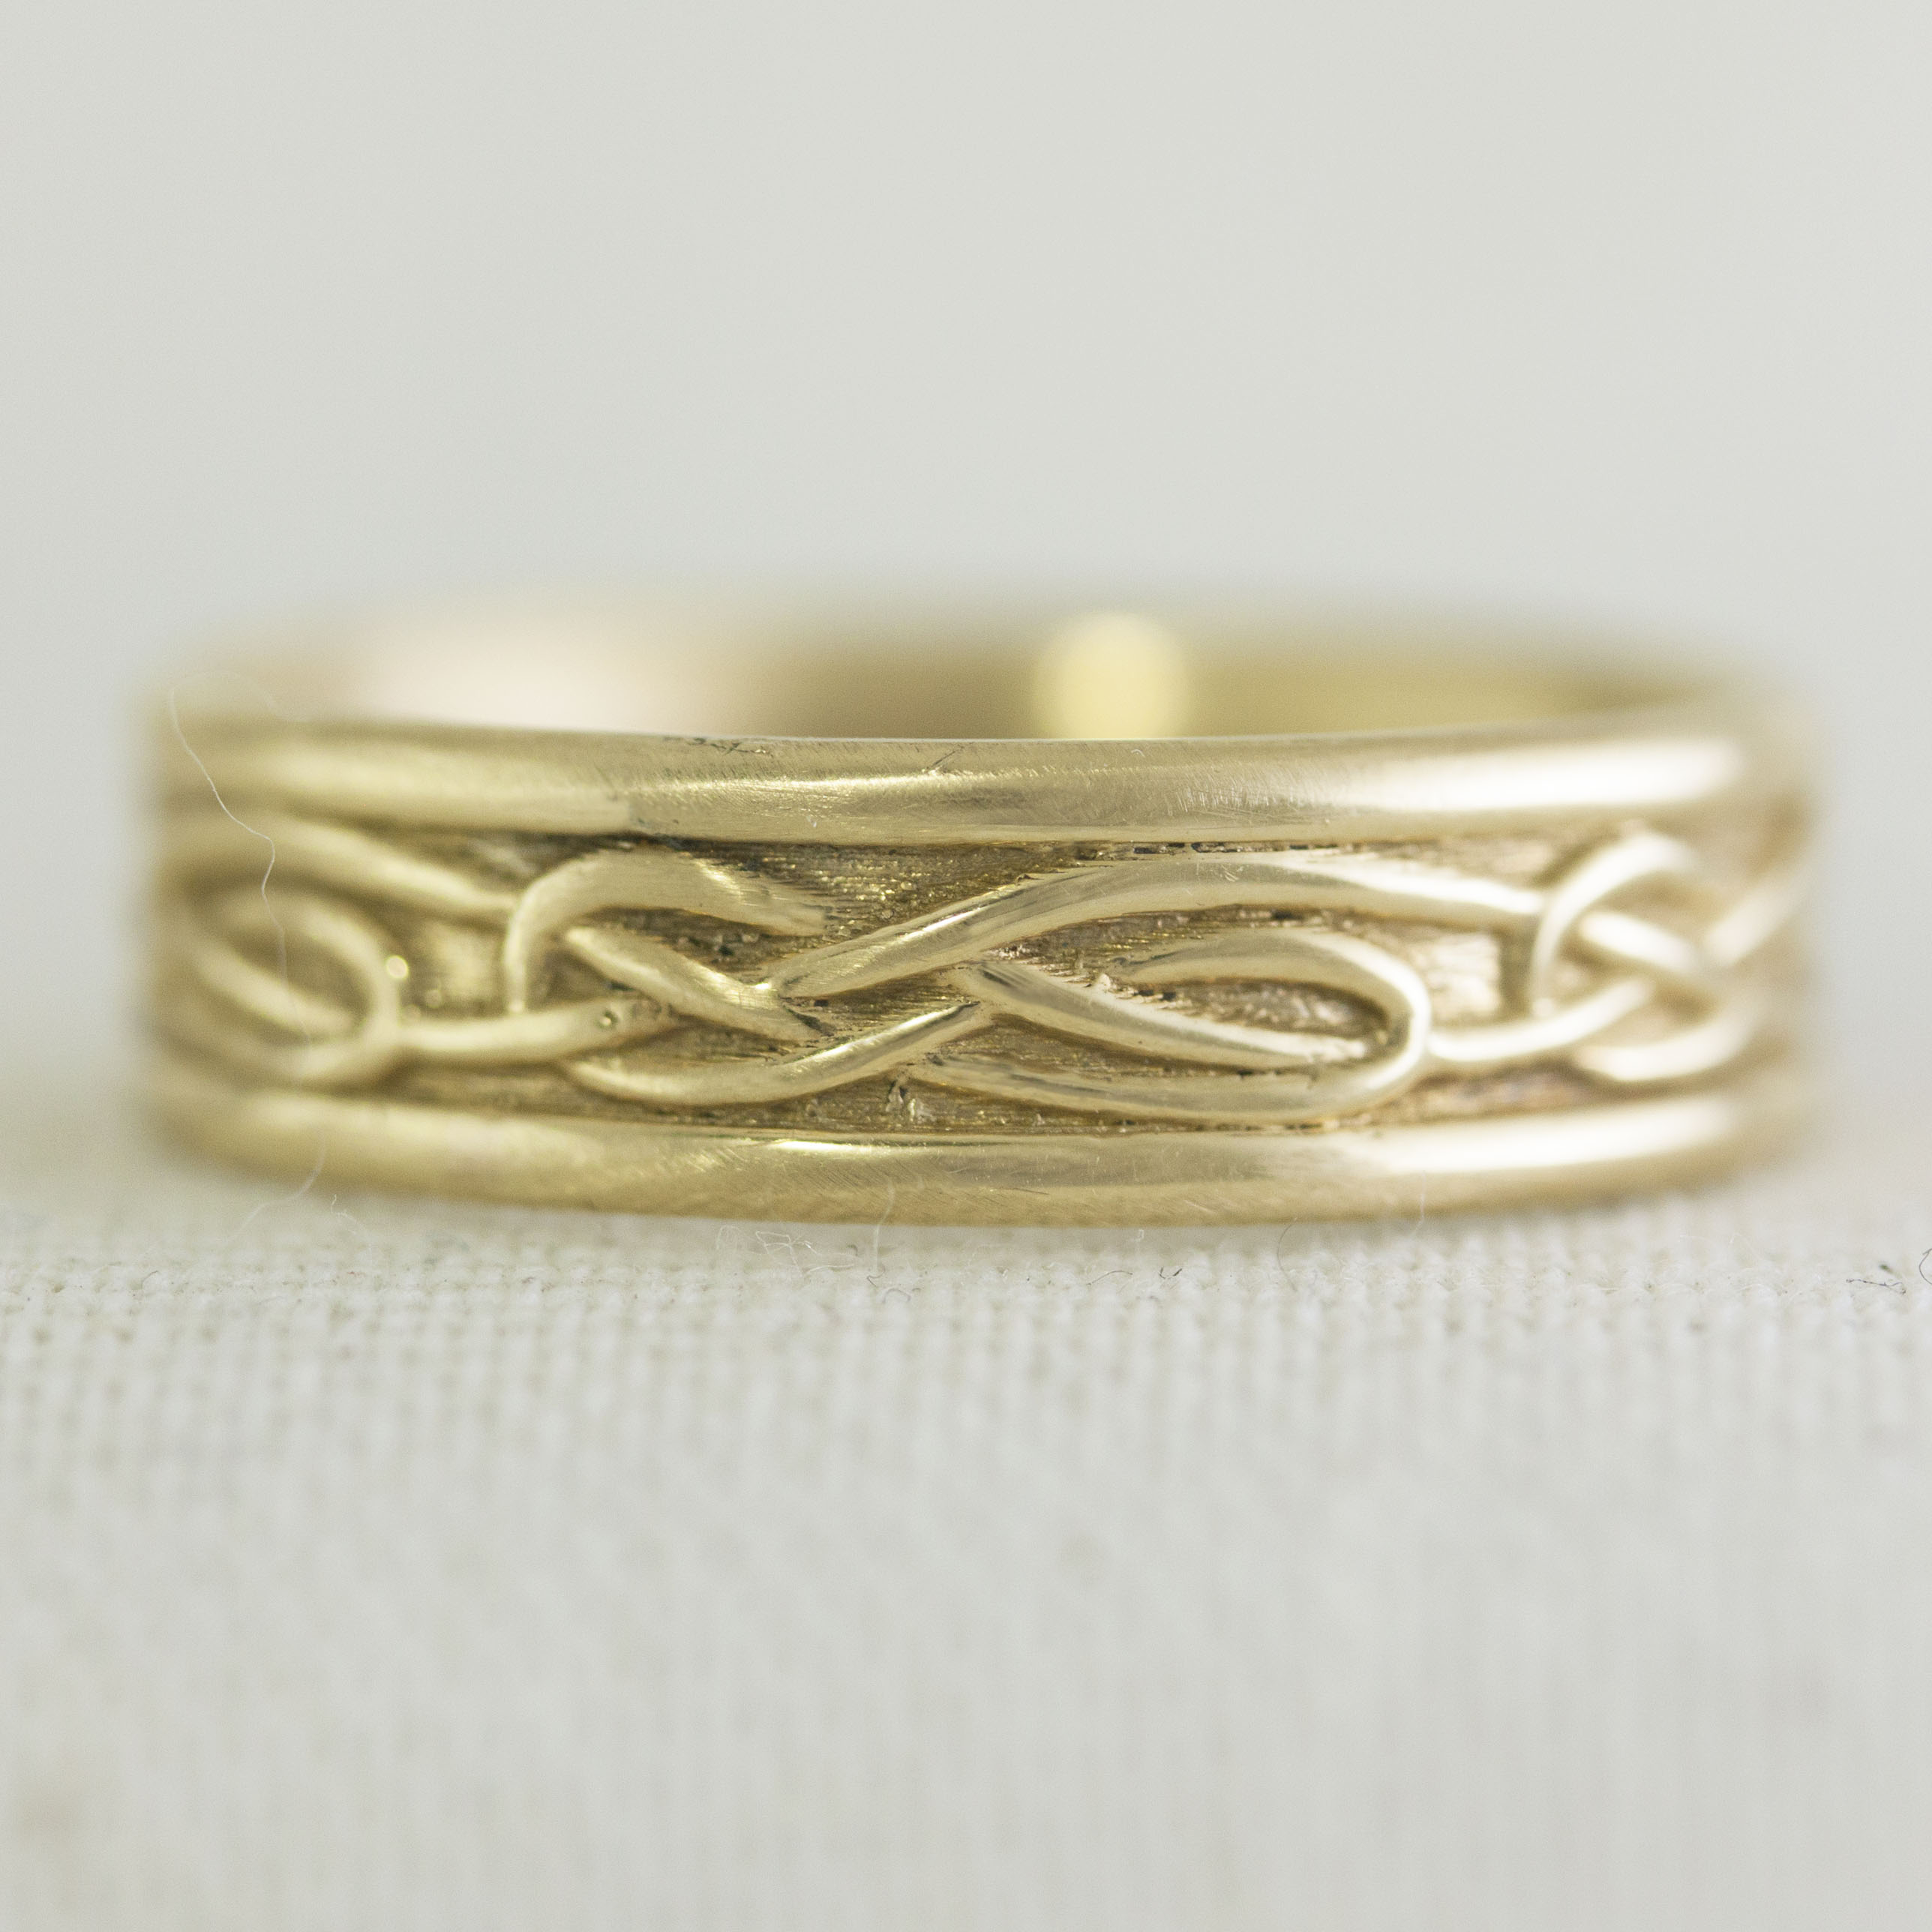 bands trinity wedding cfm ring celtic mdc wedanringsre yellow tone white rings diamonds from gold two knot